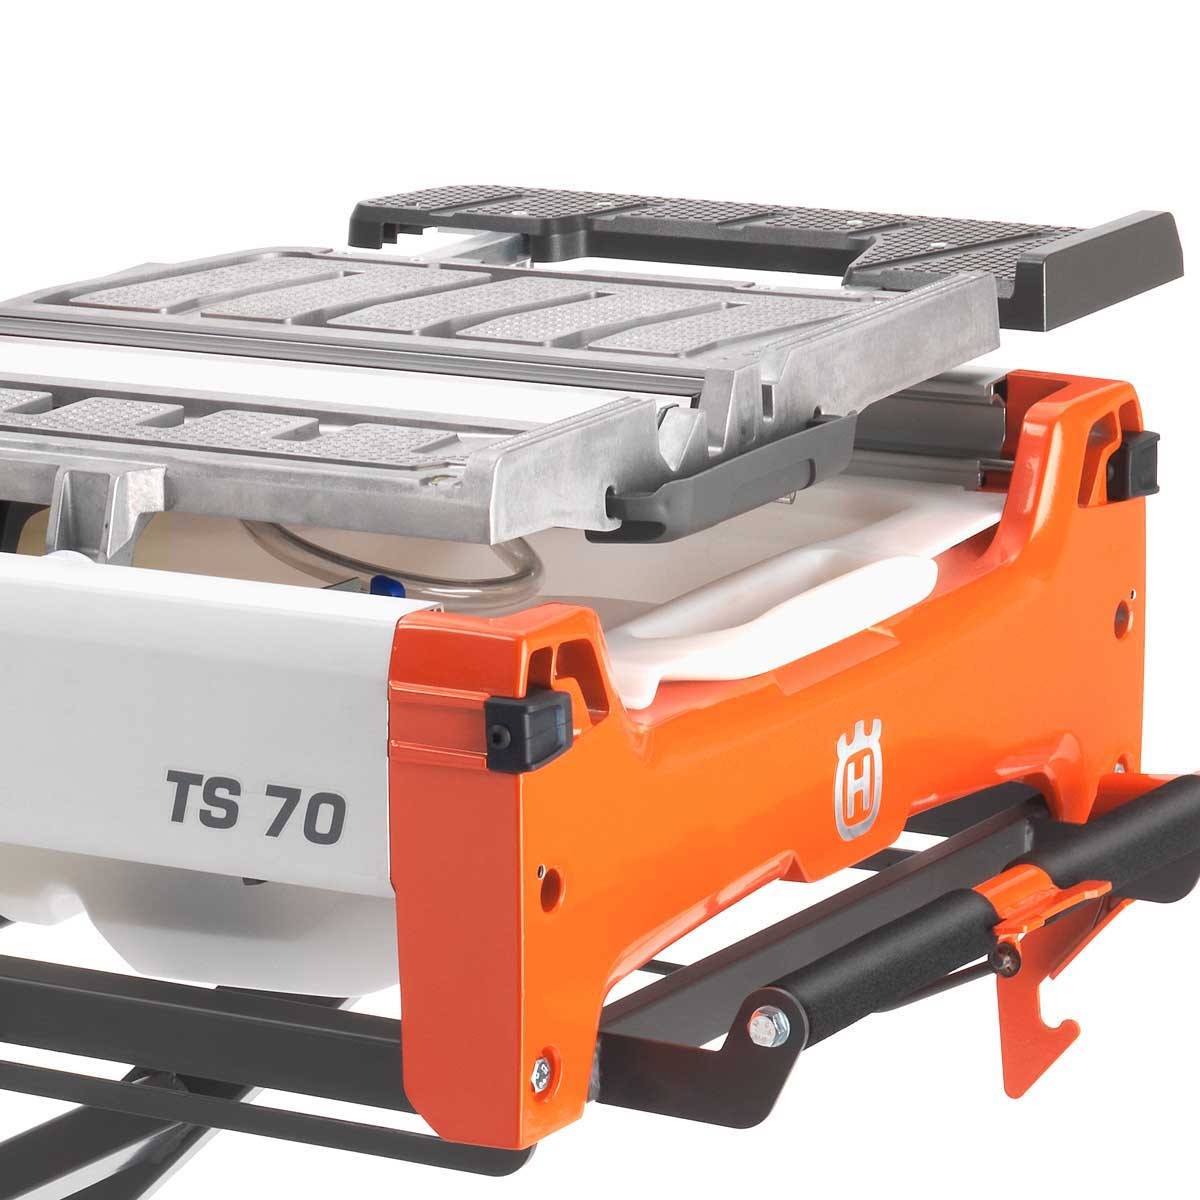 Husqvarna TS70 sliding carriage tray